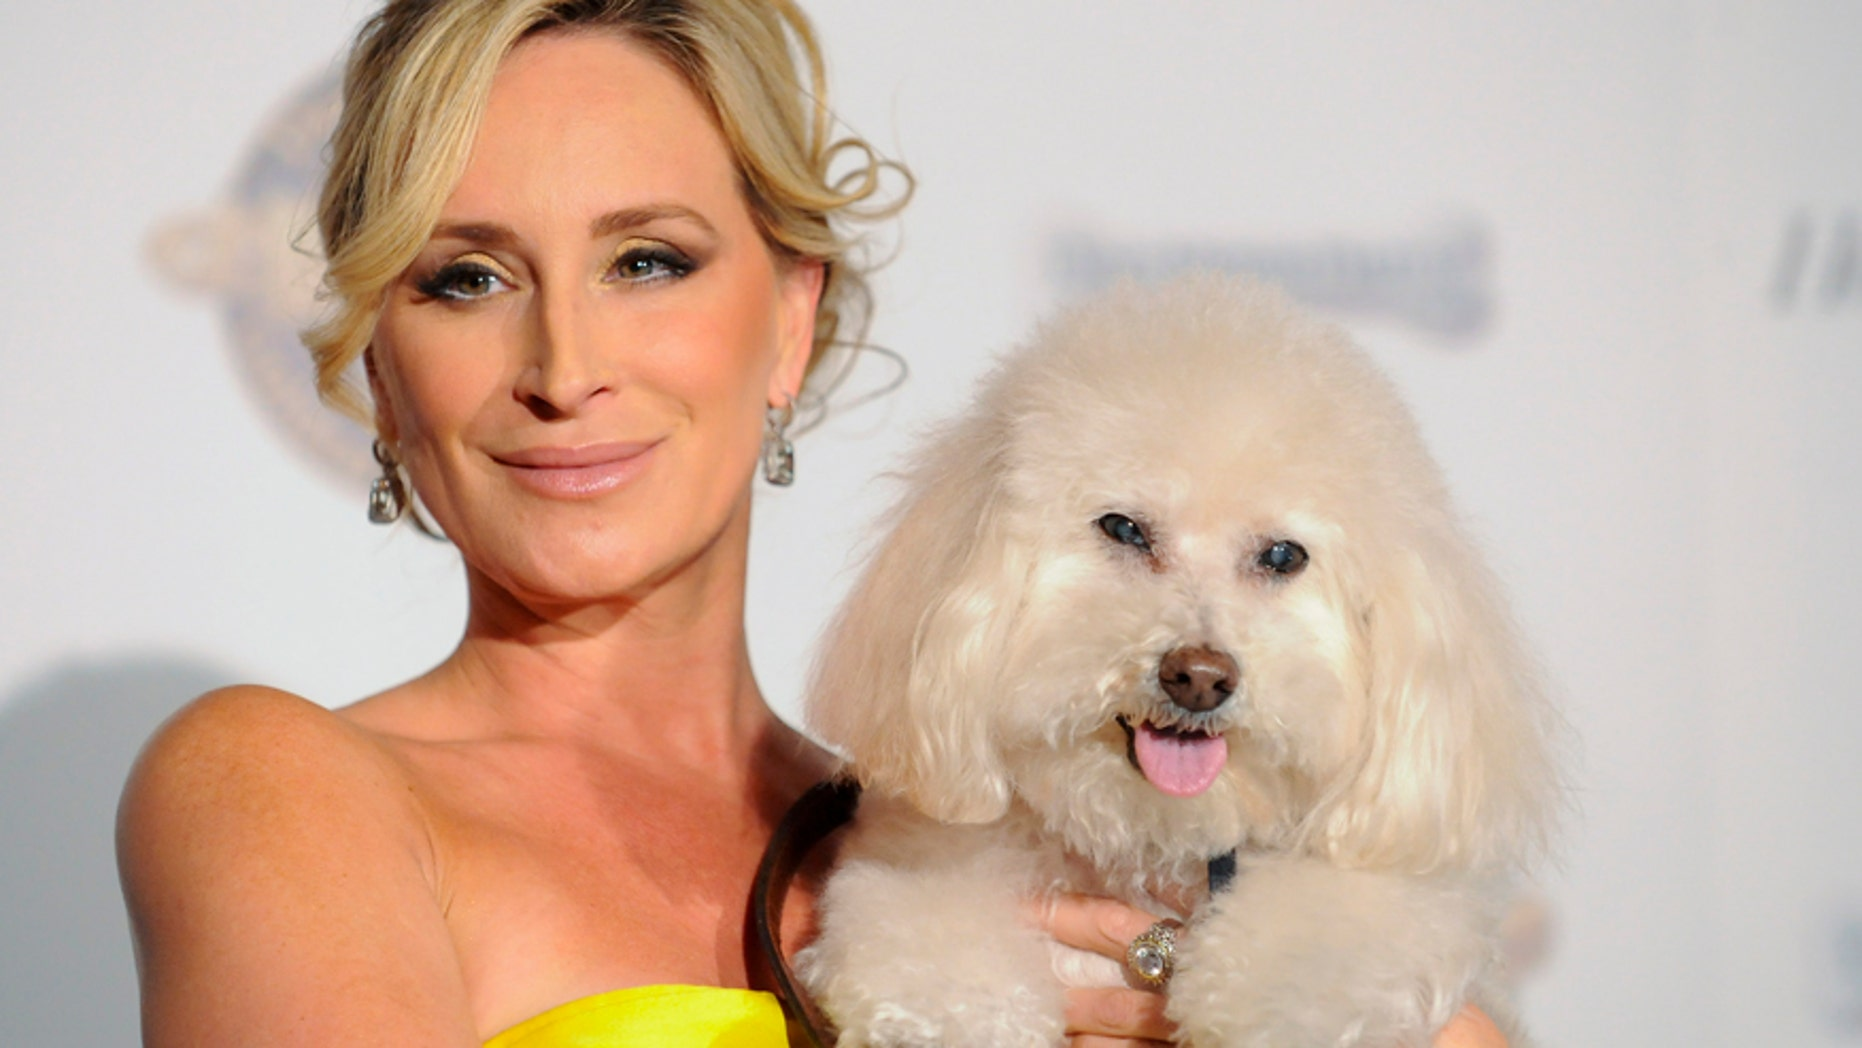 """Real Housewives of New York"" star Sonja Morgan and her dog Millou arrive at the first annual Golden Collar Awards celebrating Hollywood's most talented canine thespians from Oscar nominated films and Emmy Award winning television shows in Los Angeles, California February 13, 2012."